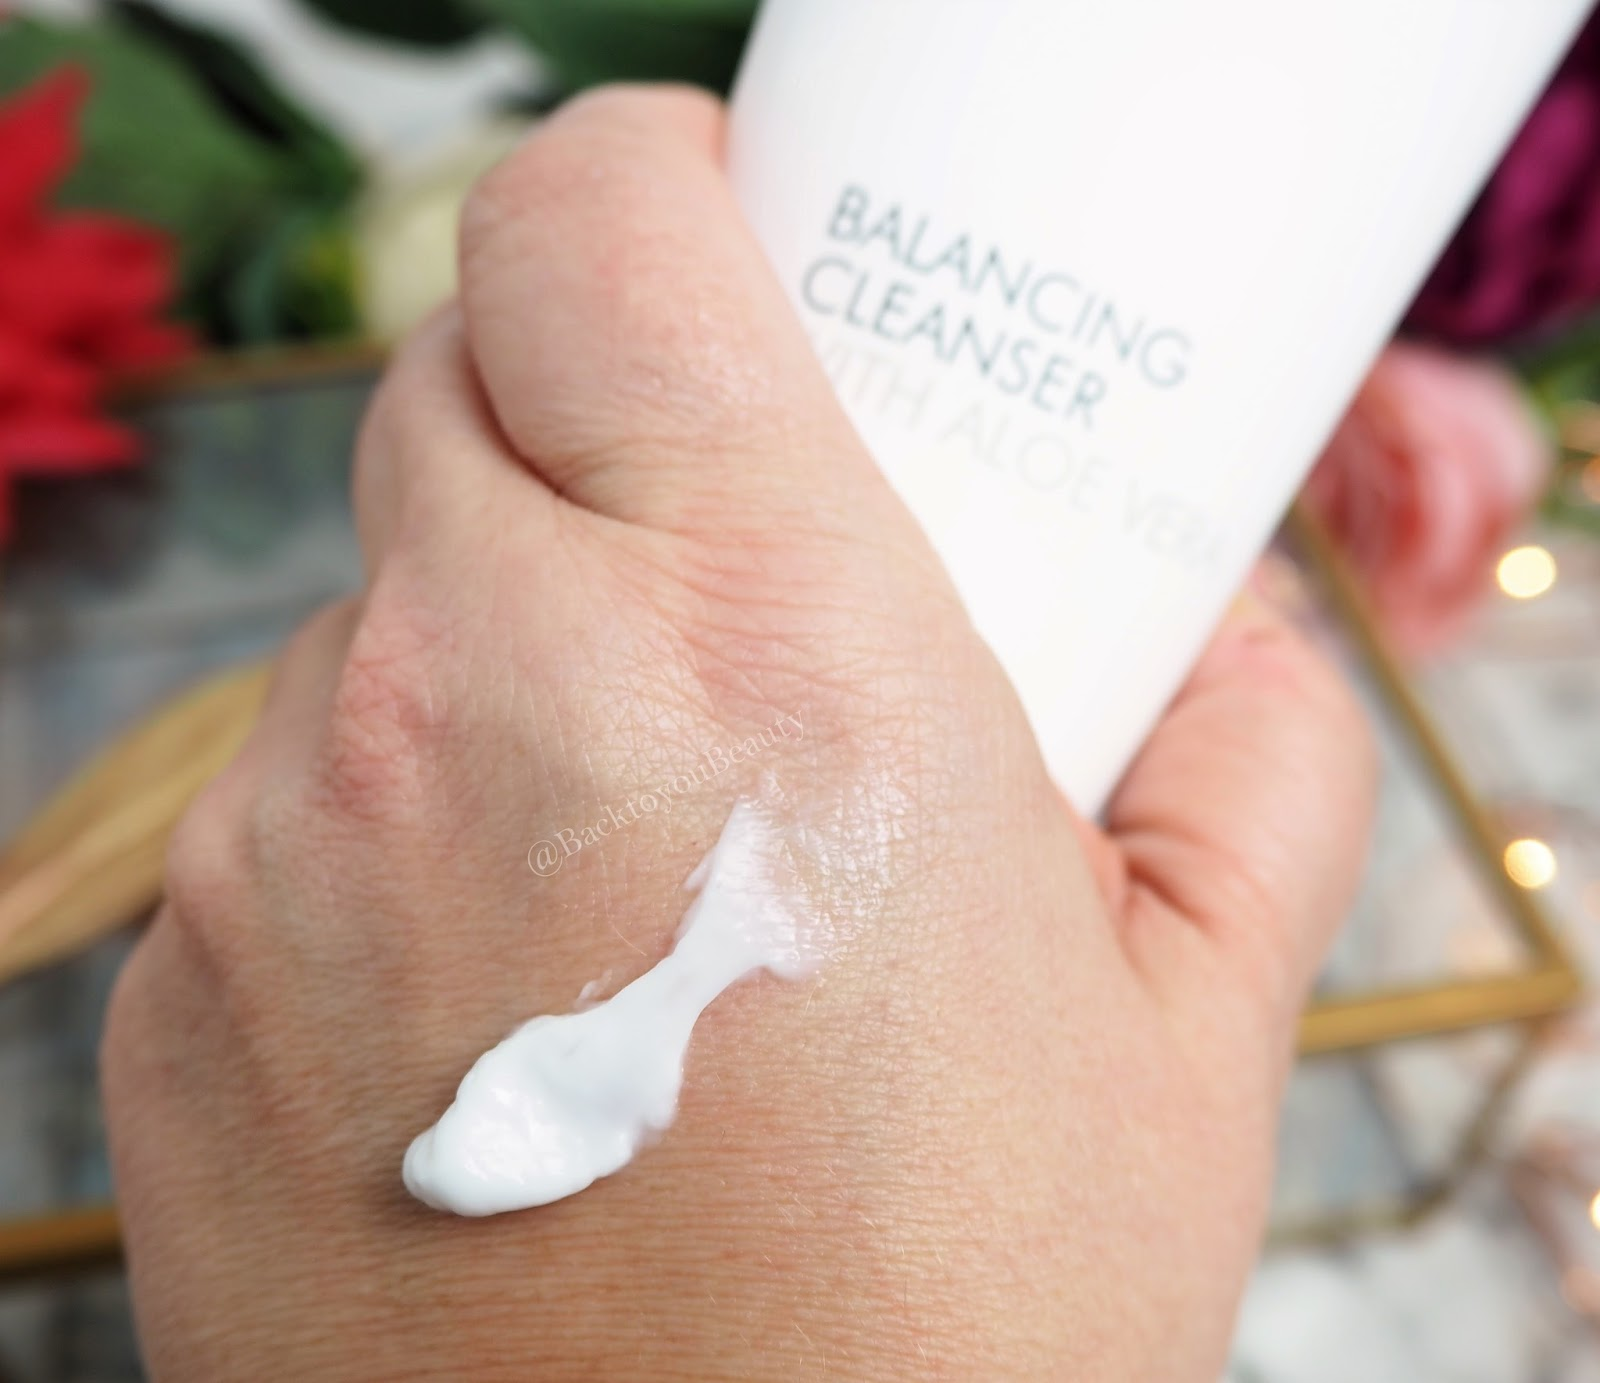 Balancing Cleanser with Aloe Vera 200ml swatch